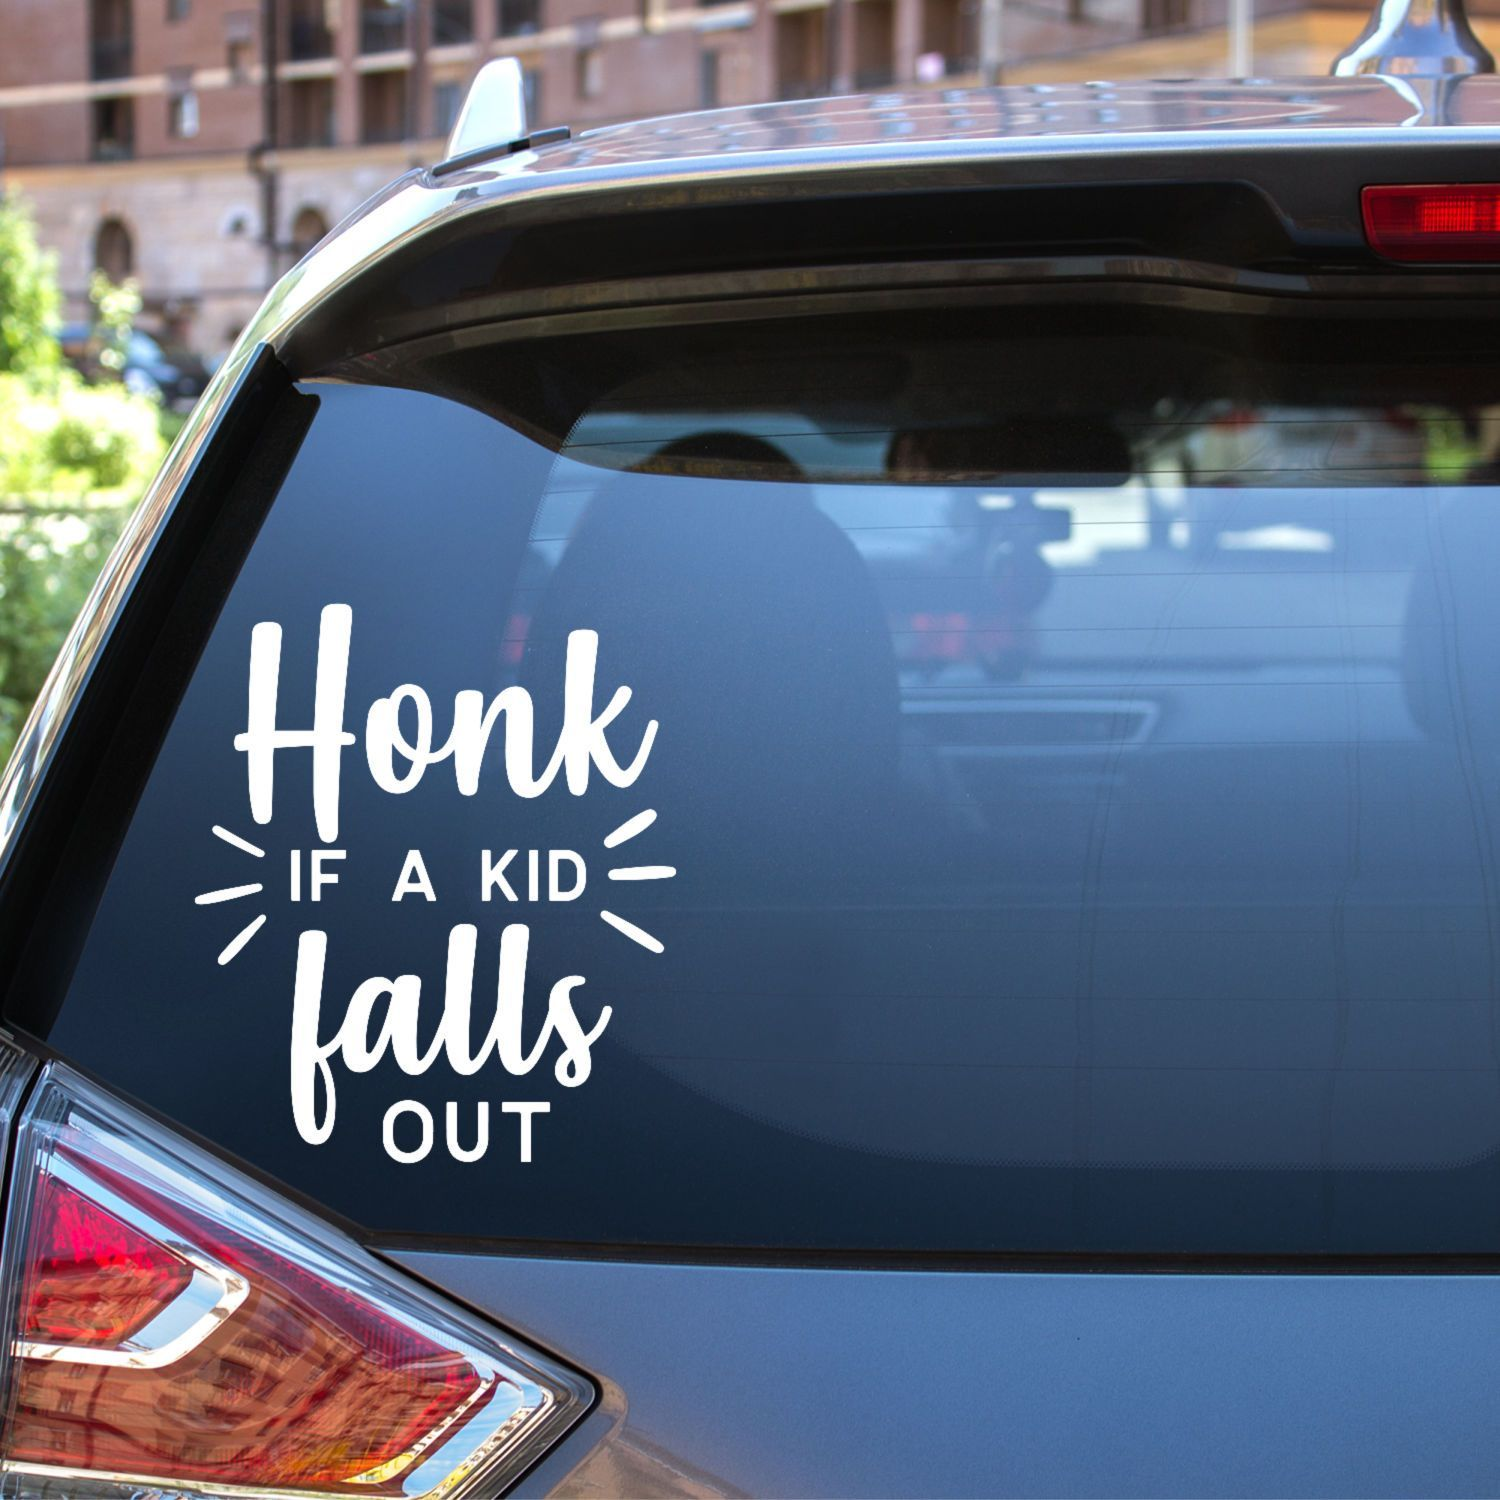 Parents Amuse Your Fellow Drivers With This Cute Car Window Sticker That Reads Honk If A Kid Falls Out Funny Car Decals Cute Car Decals Monogram Car Stickers [ 1500 x 1500 Pixel ]